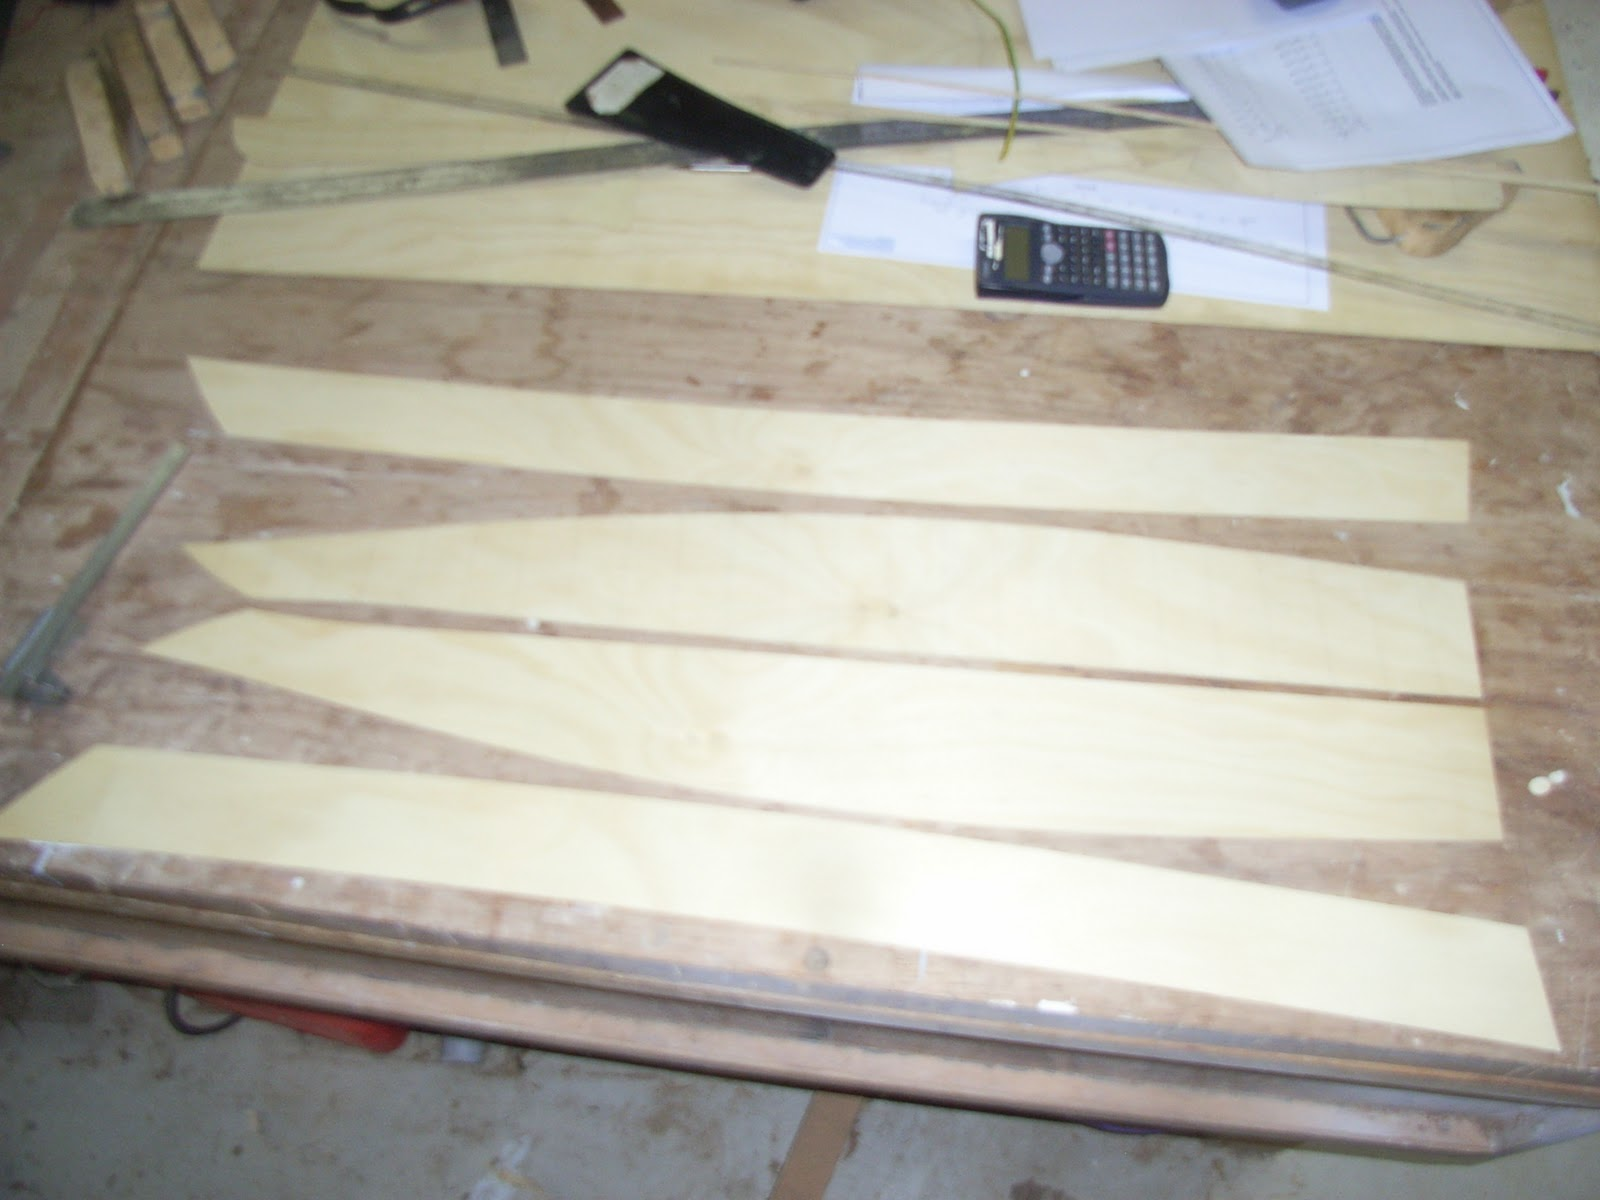 from 1.5mm Hoop Pine marine plywood to produce a 1/8th scale model